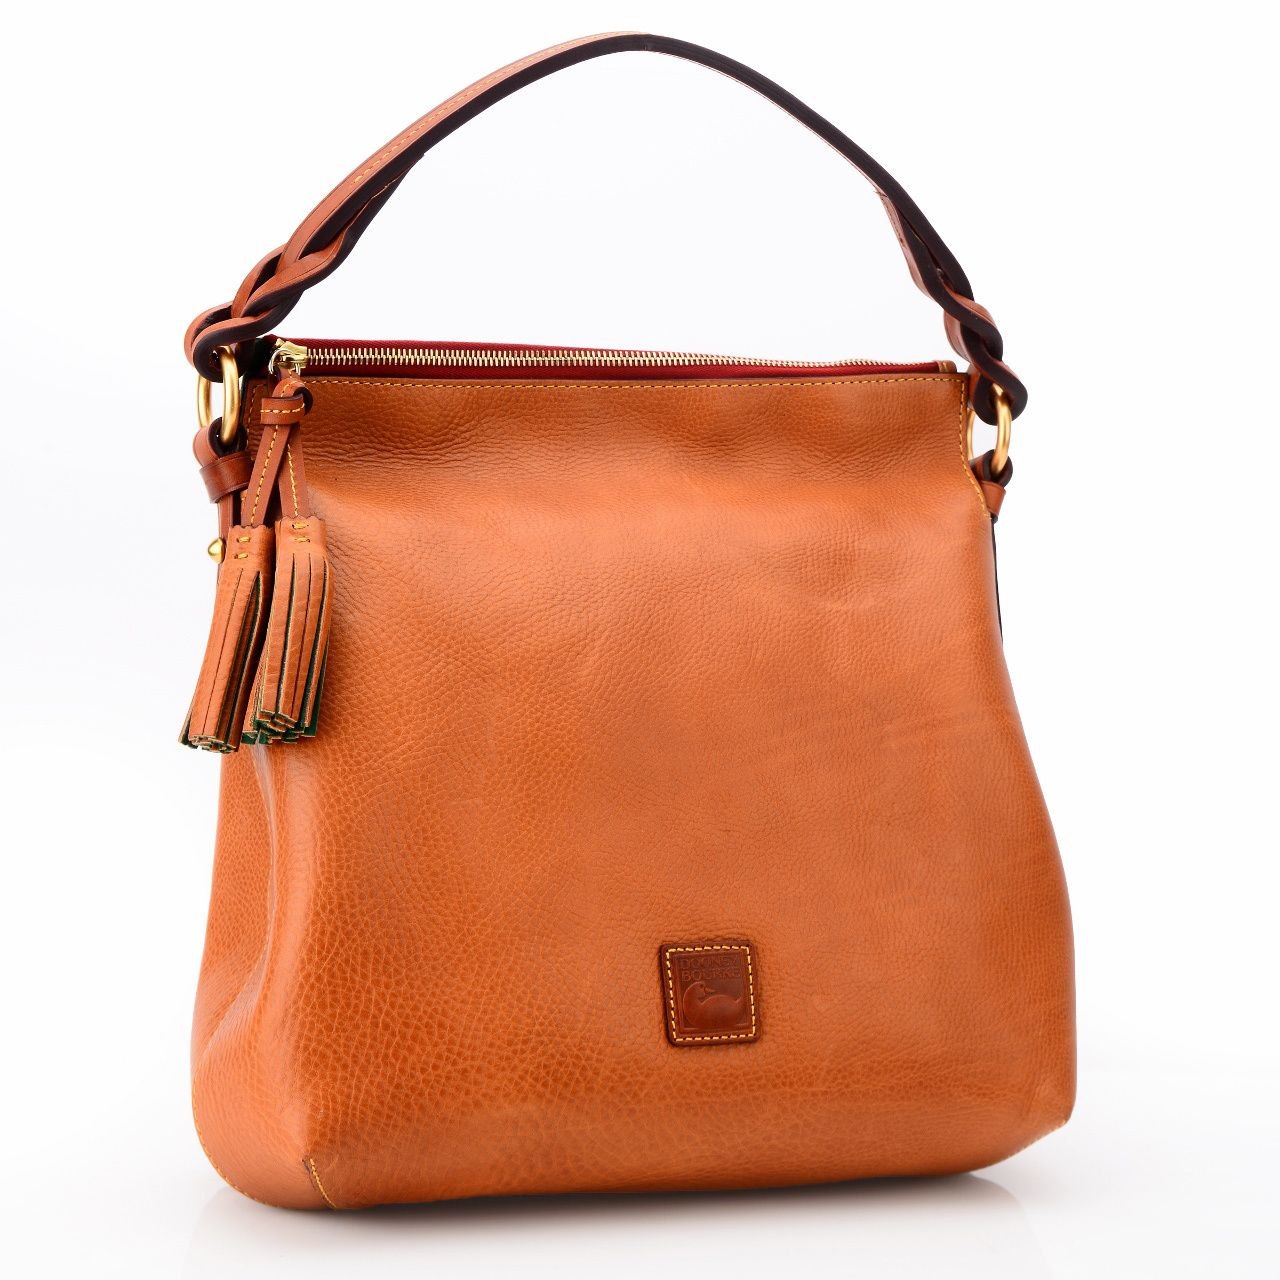 You adore smart, classic accessories that never go out of style--which is why you'll treasure this Florentine leather hobo bag. For just a smidgen of sass, a twisted shoulder strap offsets the sleek body.